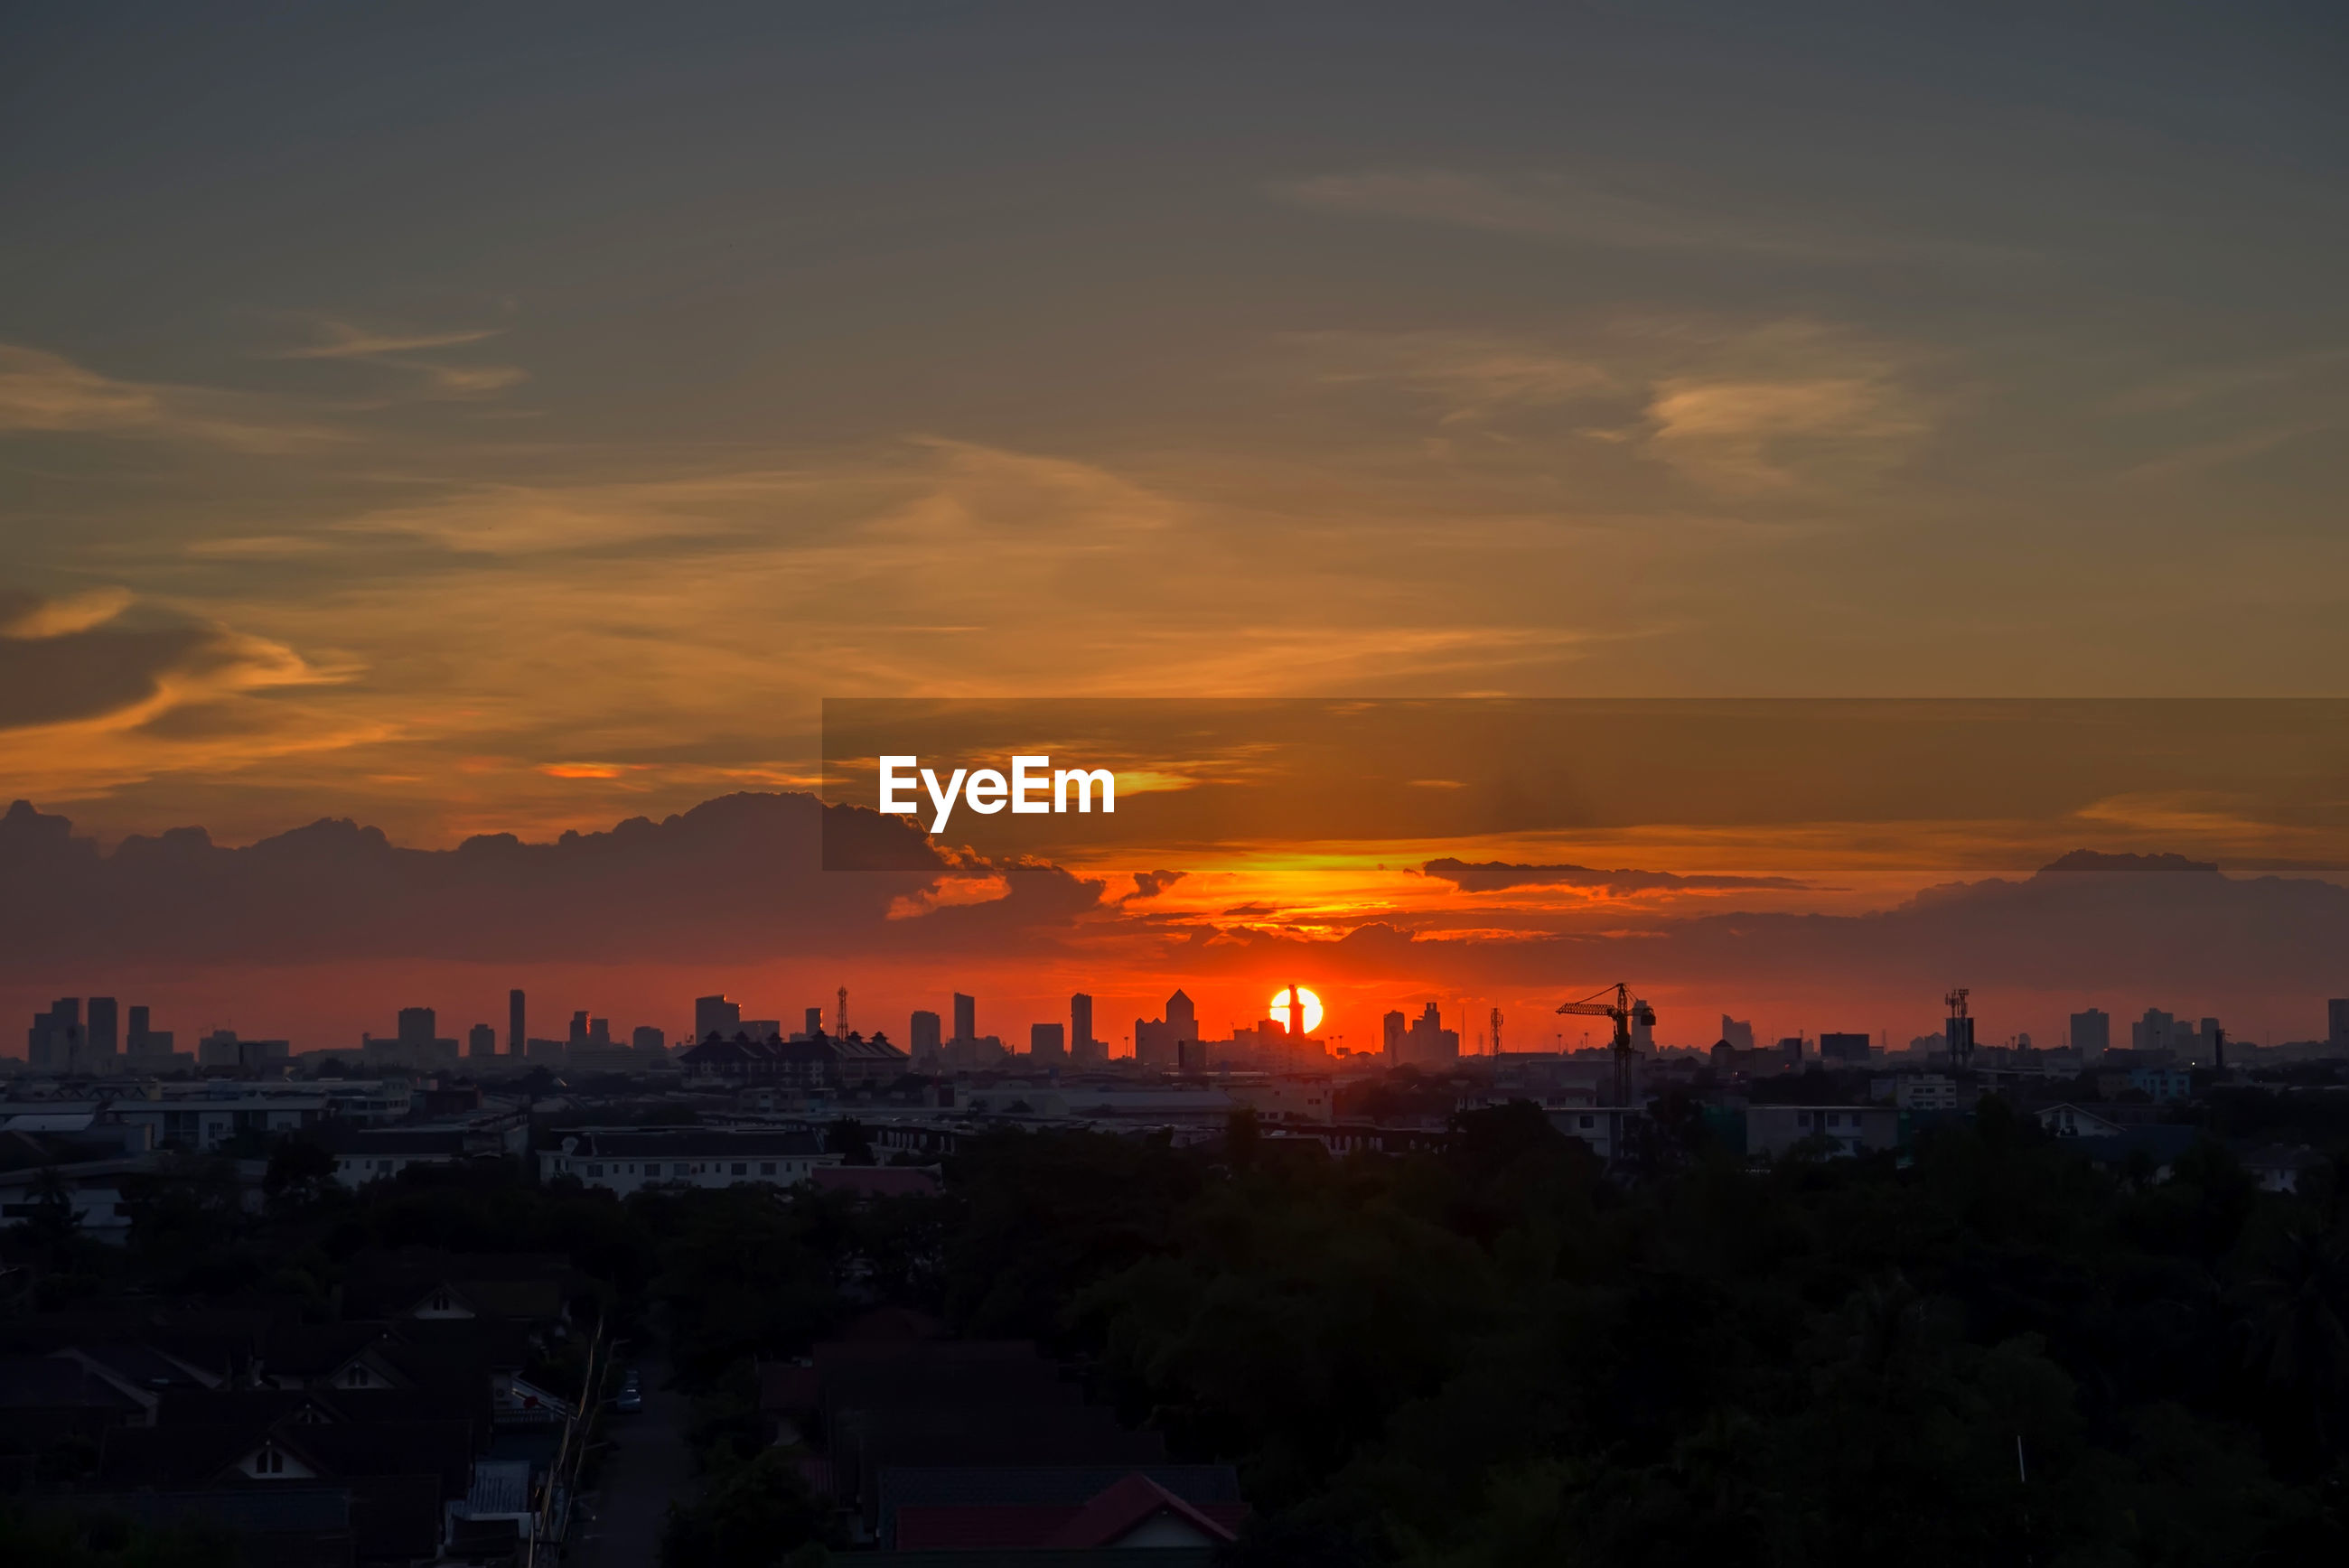 HIGH ANGLE VIEW OF SILHOUETTE BUILDINGS AGAINST ORANGE SKY